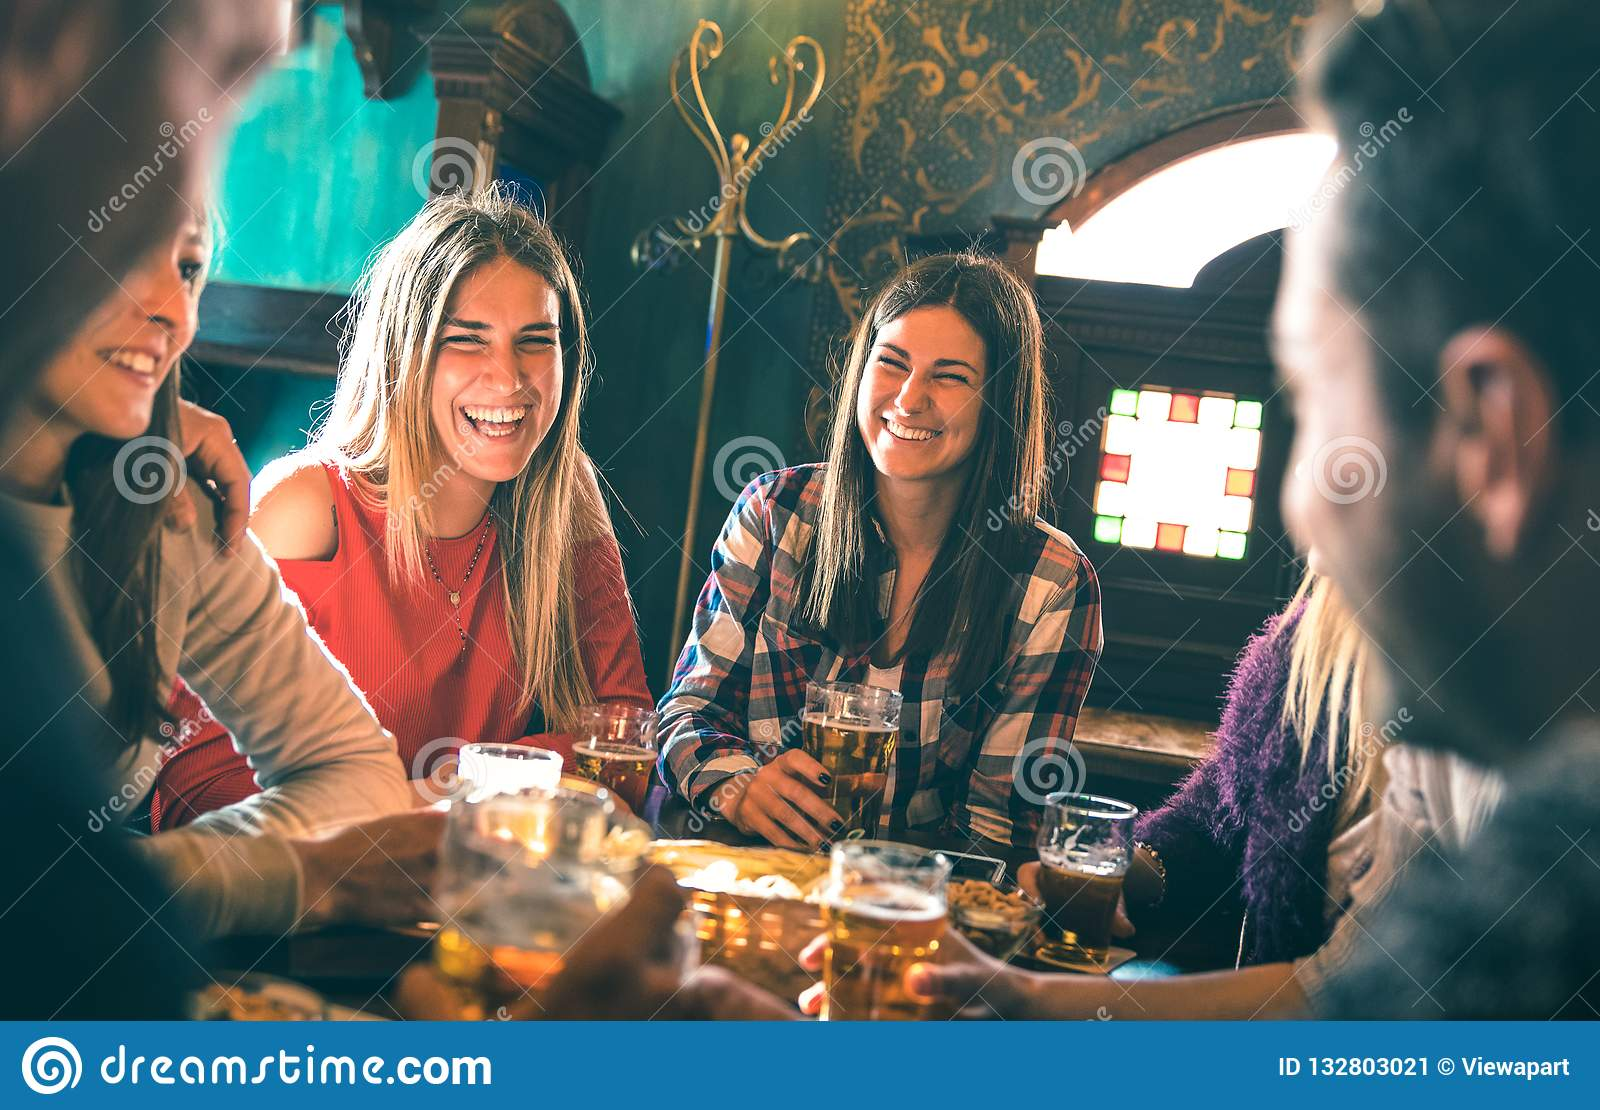 Group of happy friends drinking beer at brewery bar restaurant